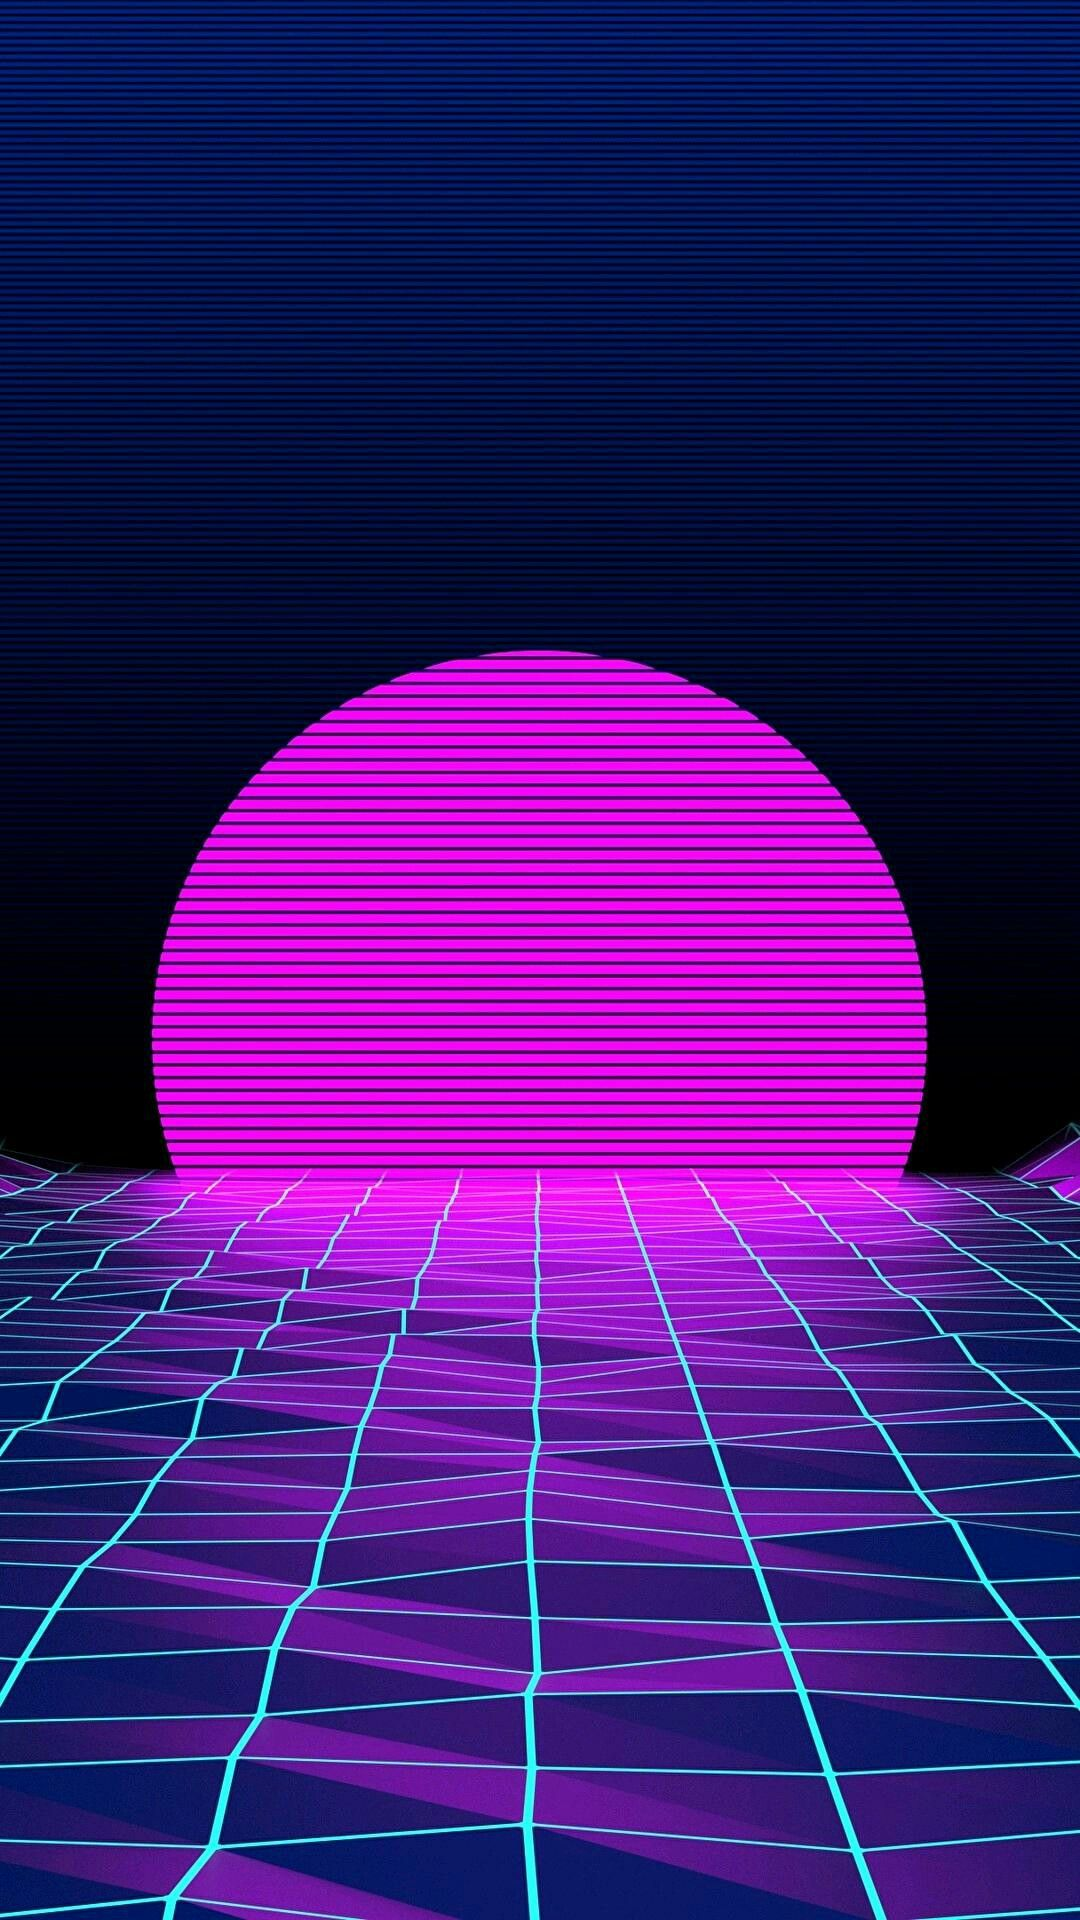 Vaporwave Wallpaper Indie Art Graphic Iphone Wallpapers Panda Fantasy Style Purple Aesthetic Trippy